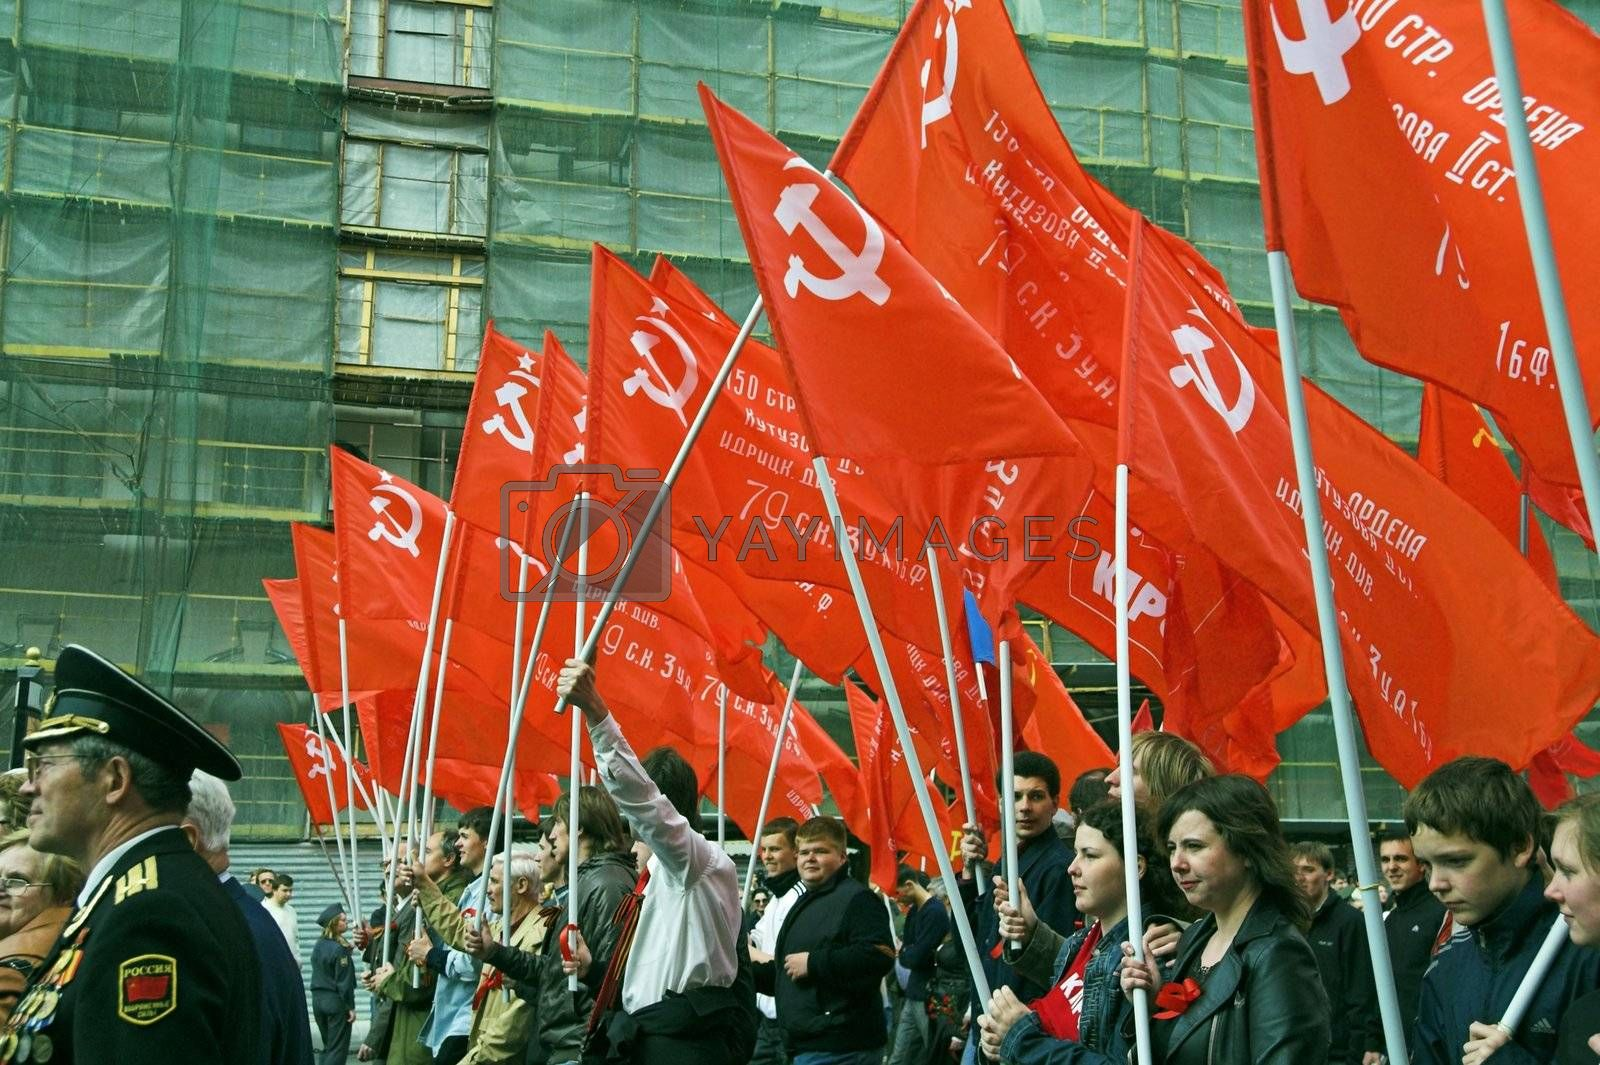 ST PETERSBURG, RUSSIA-MAY 9, 2008: People walking in demonstration to celebrate World War II Victory Day on May 9, 2008.